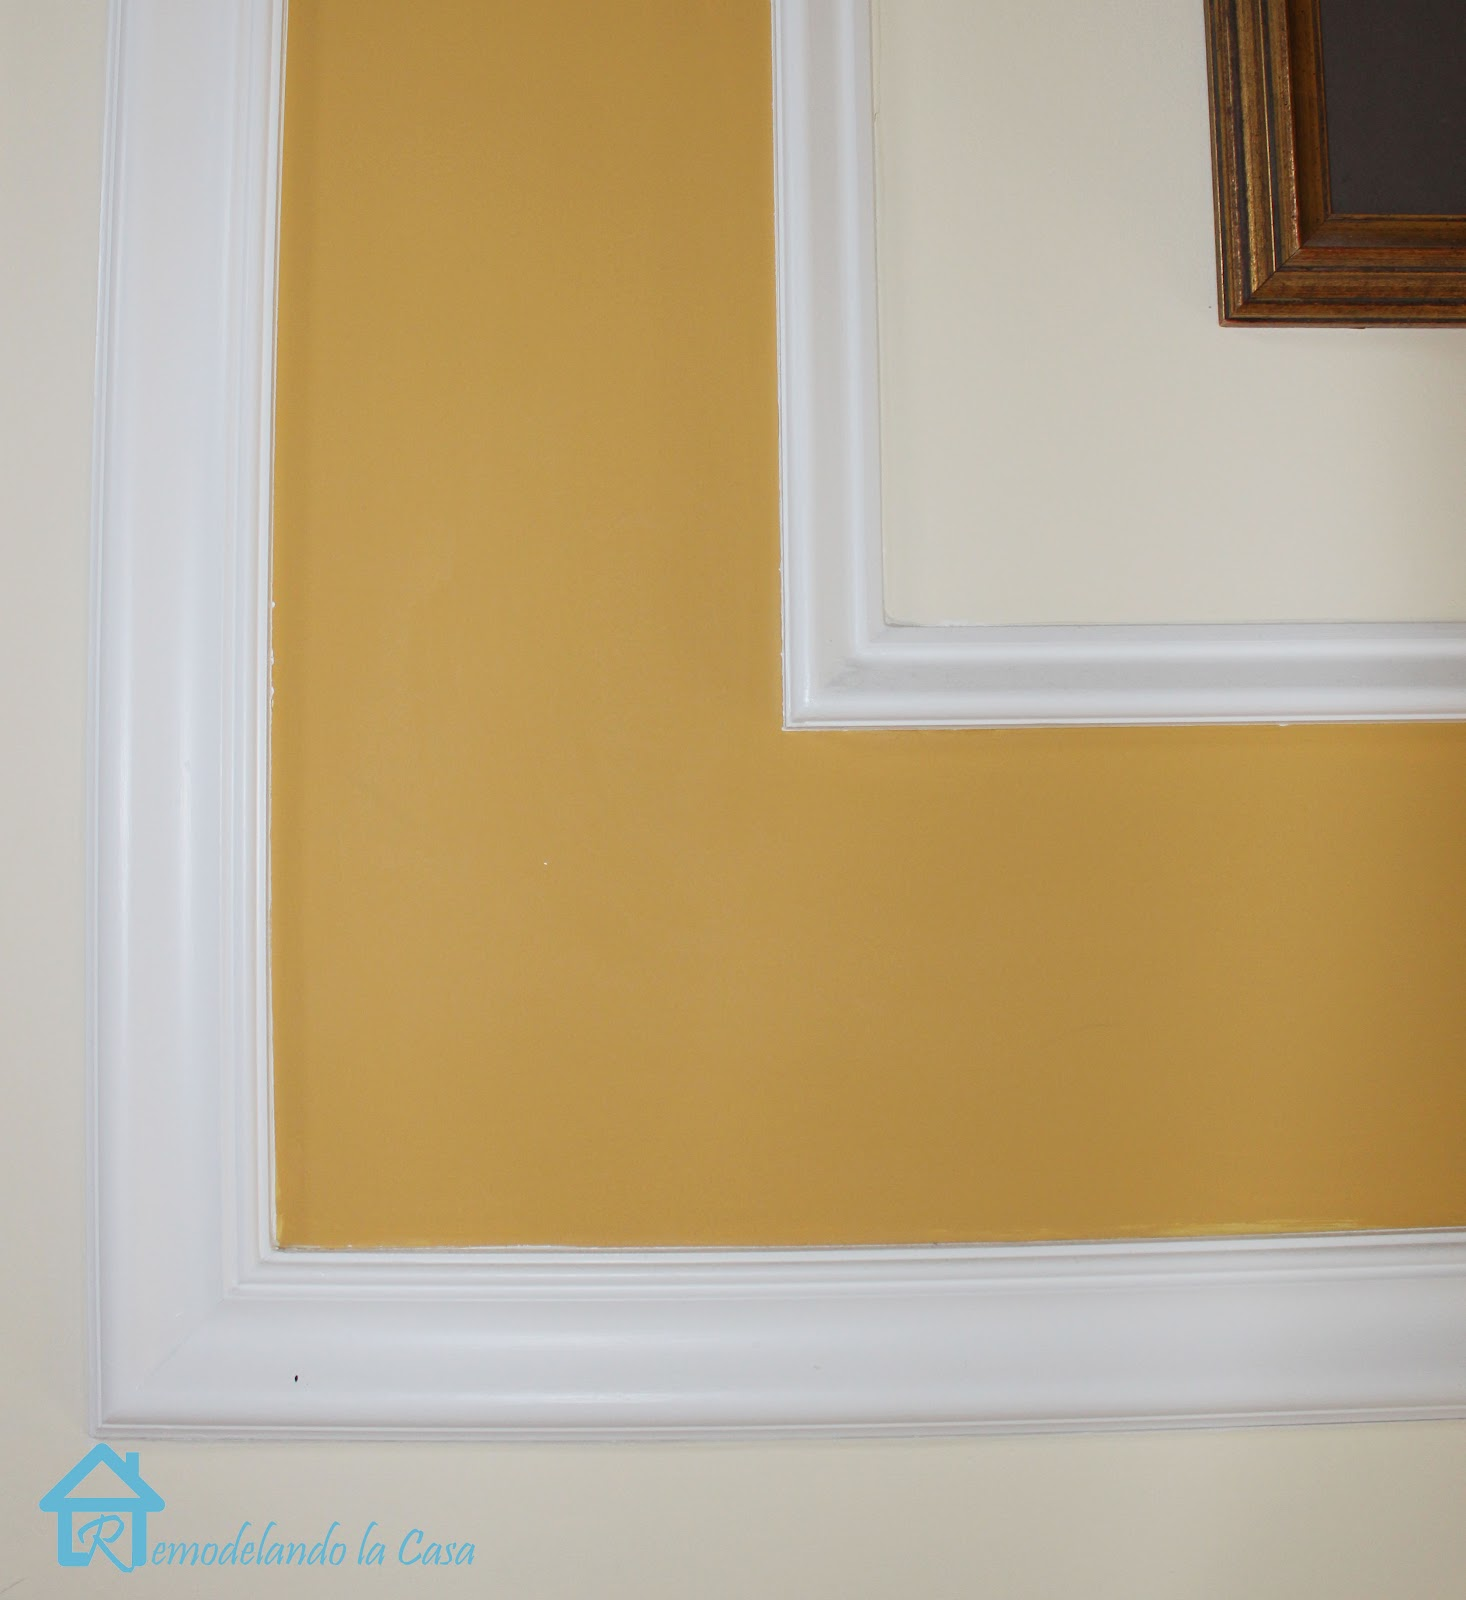 Endearing 40+ Wall Frame Molding Inspiration Of Top 25+ Best Picture ...